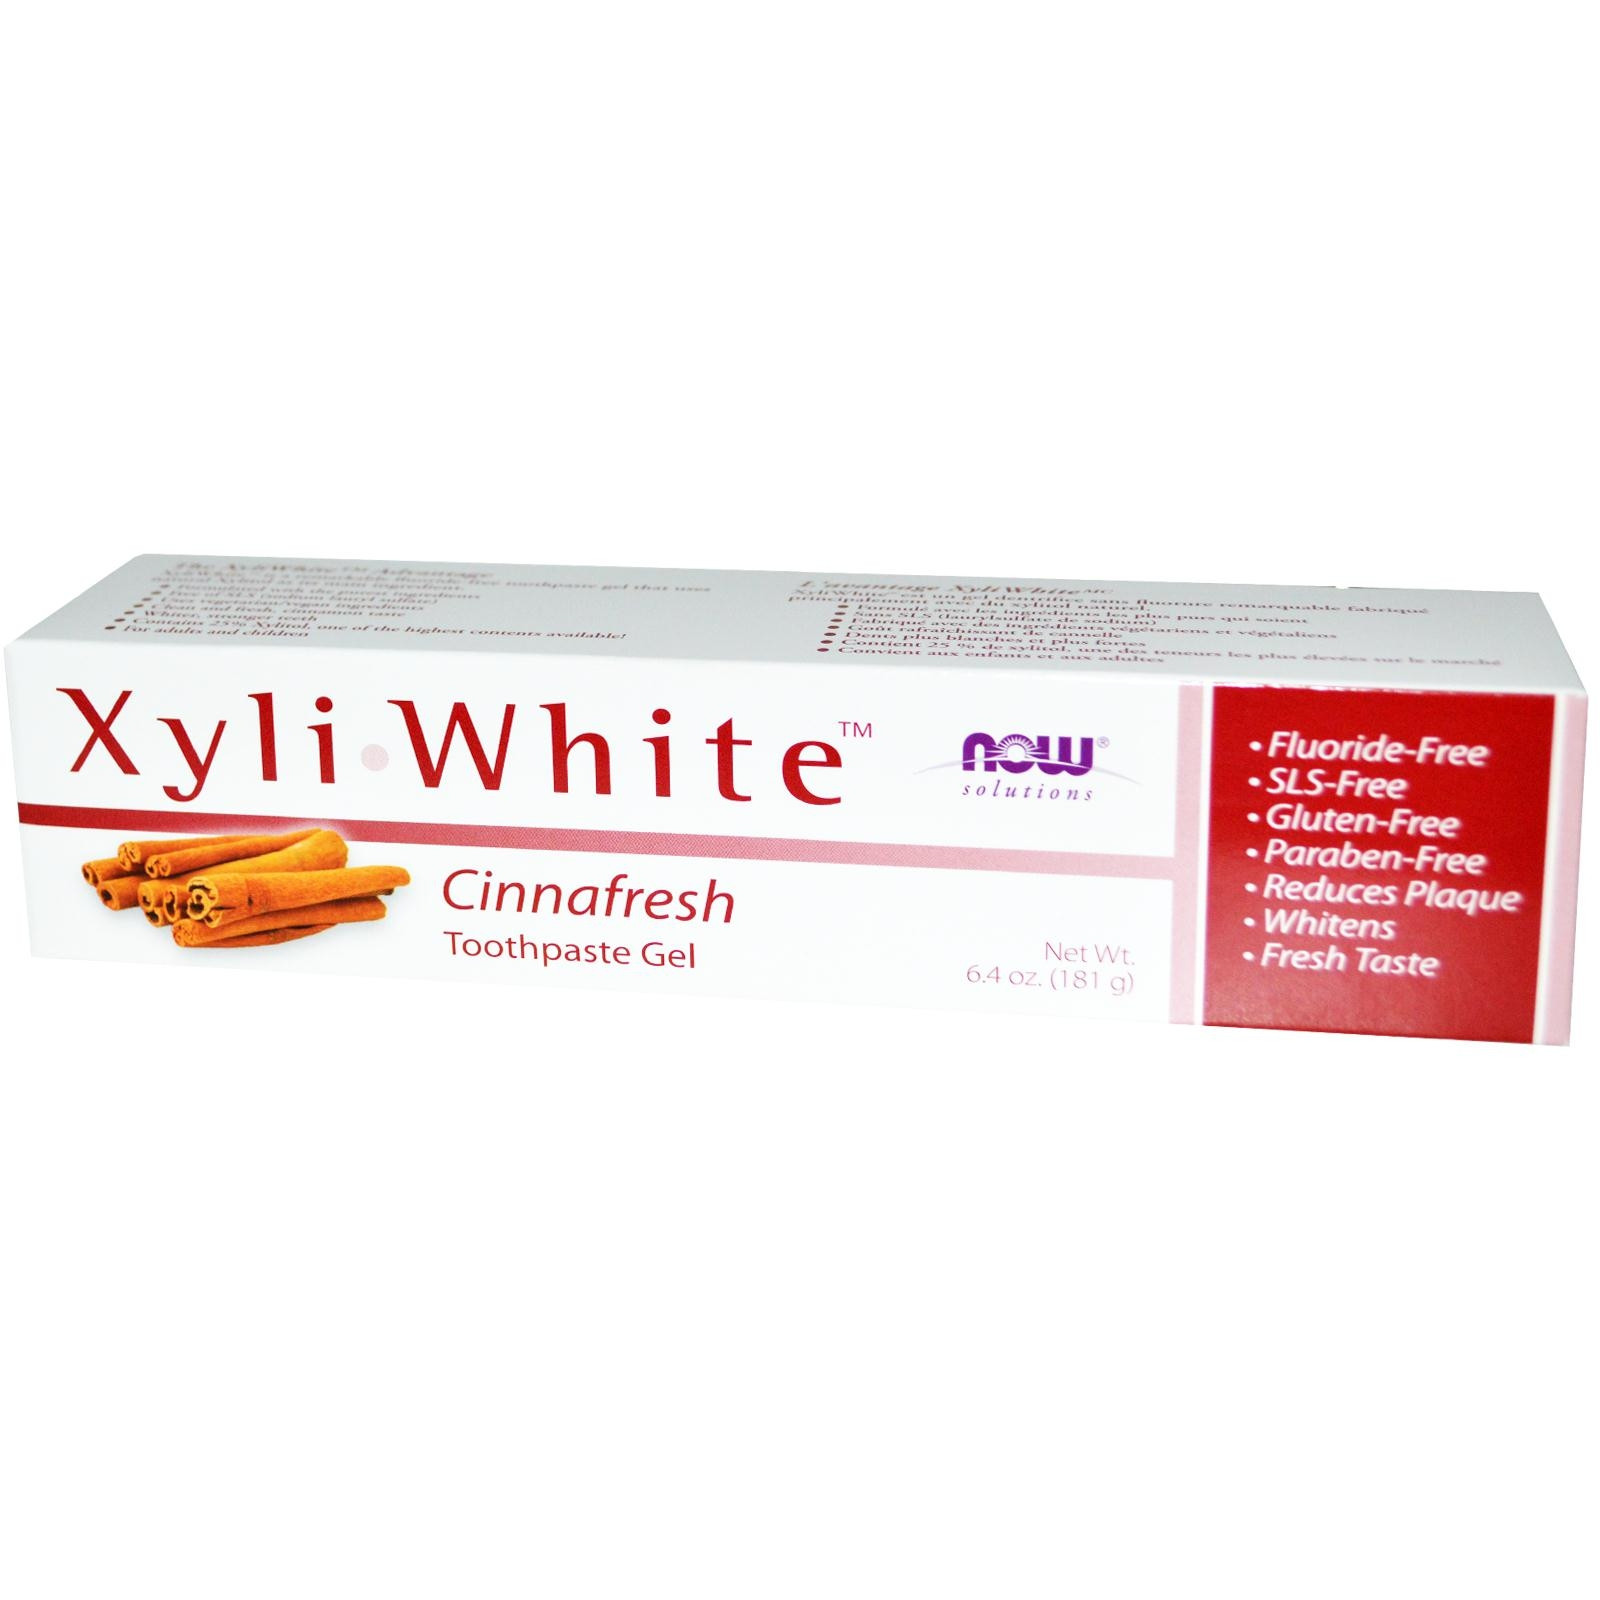 НАУ ФУУДС КСИЛИУАЙТ™ КАНЕЛА паста за зъби 200г | NOW FOODS XYLIWHITE™ CINNAFRESH toothpaste 200g